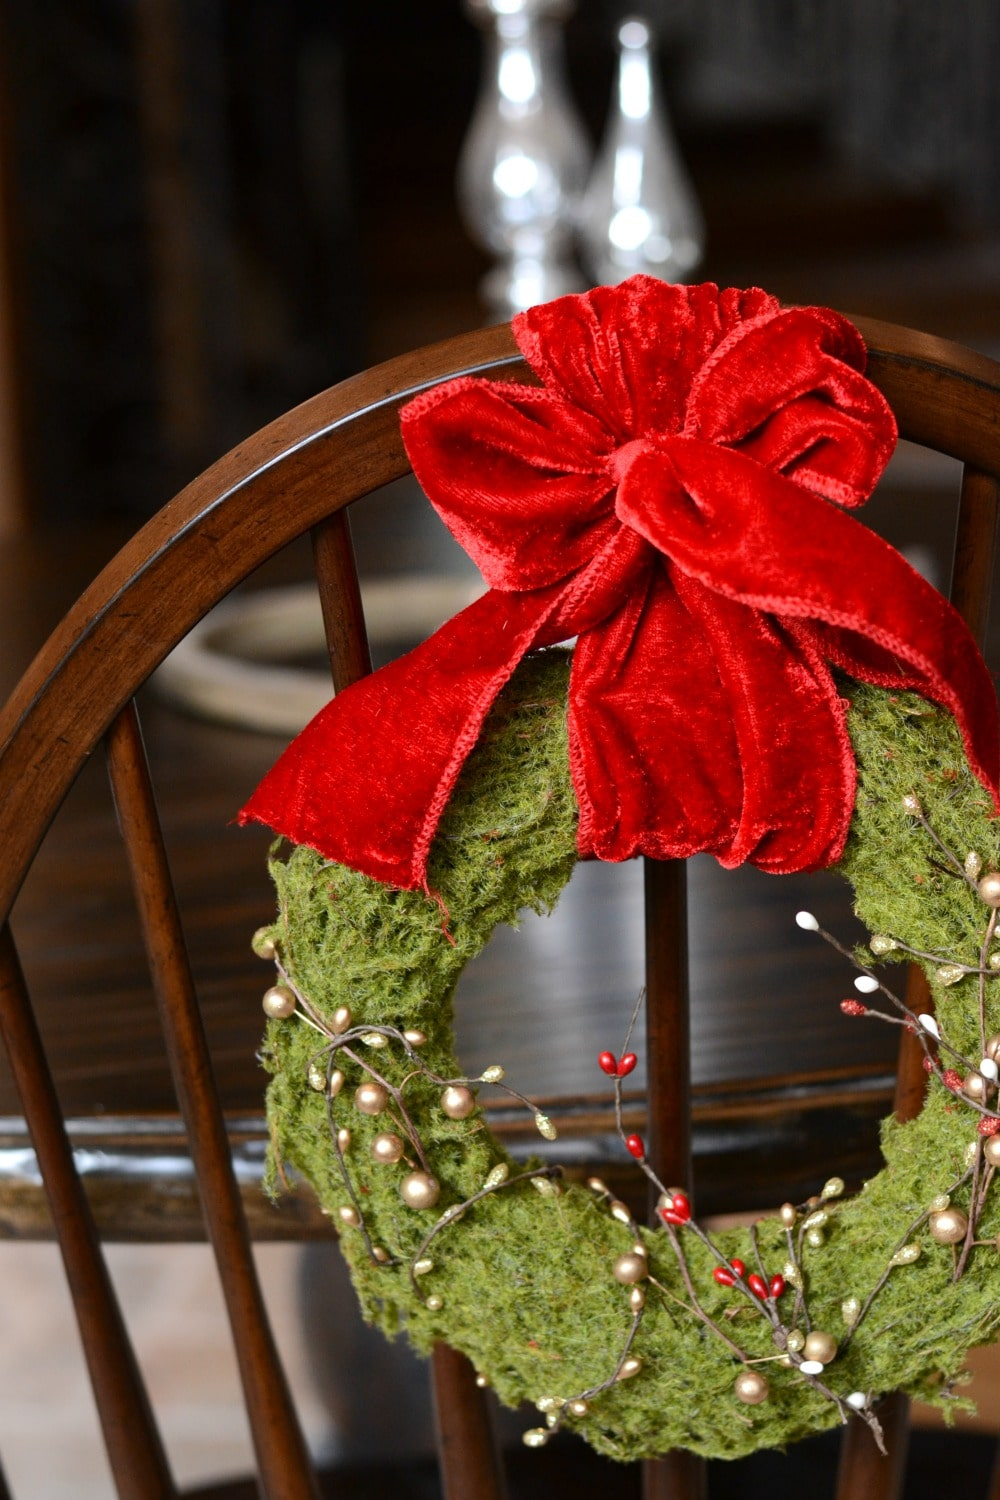 Hang wreath over the back of a dining chair